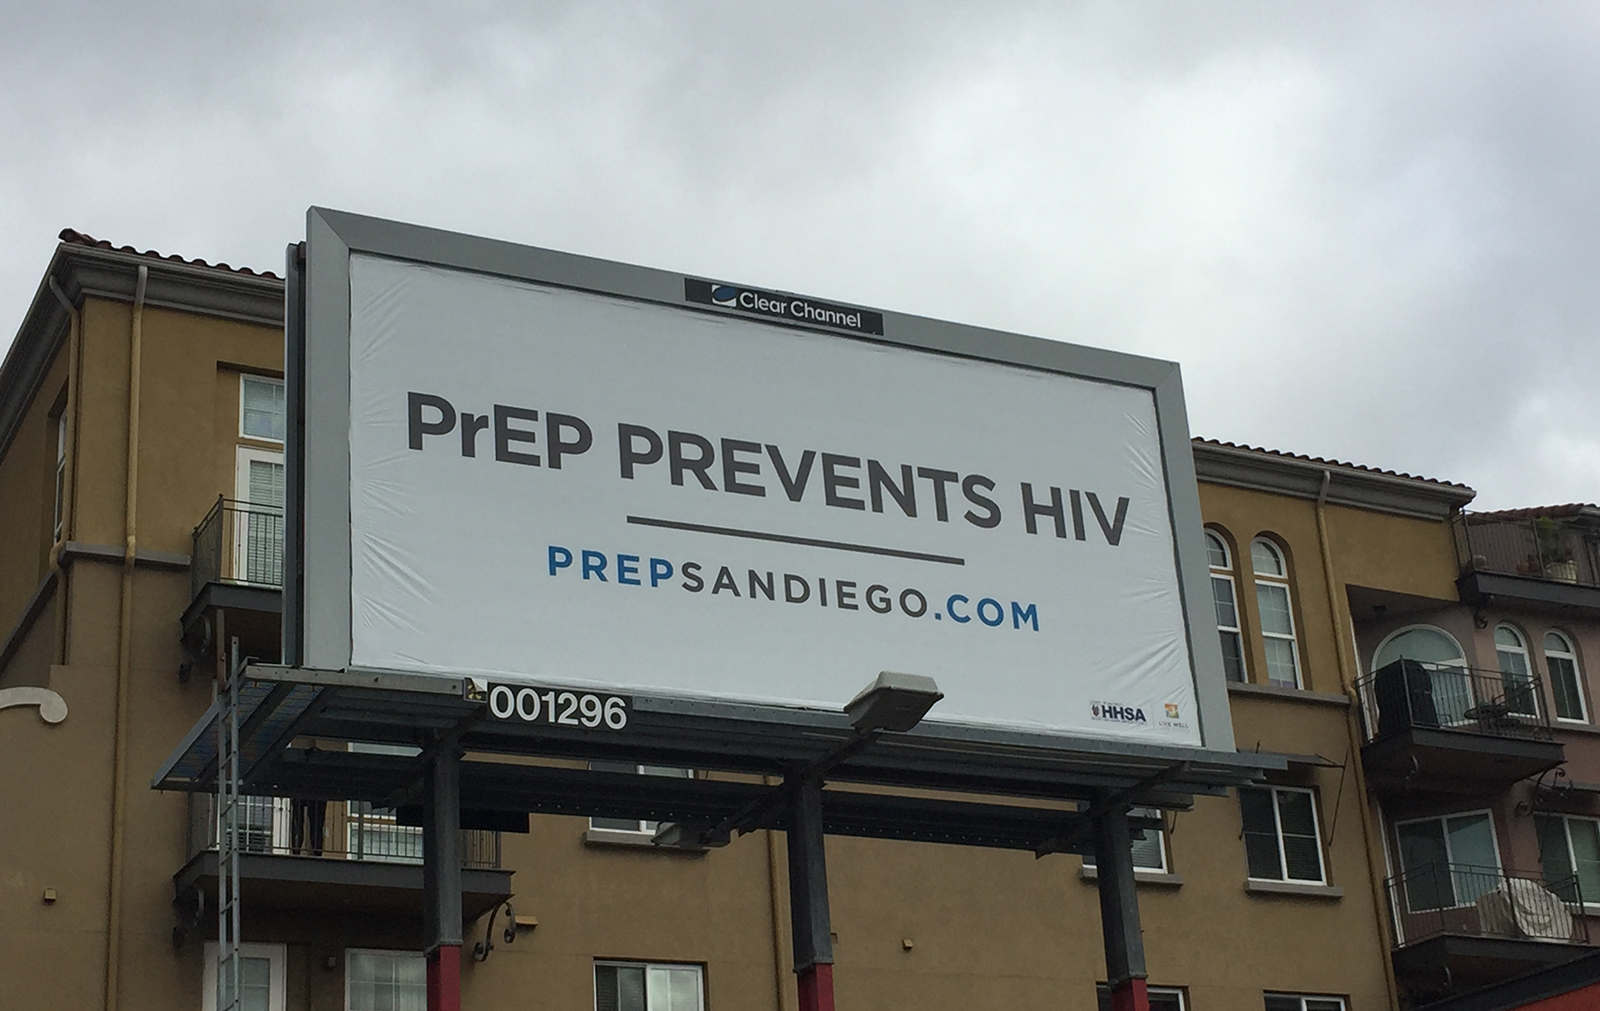 PrEP billboard near the corner of 30th St. and Lincoln Ave. in North Park.